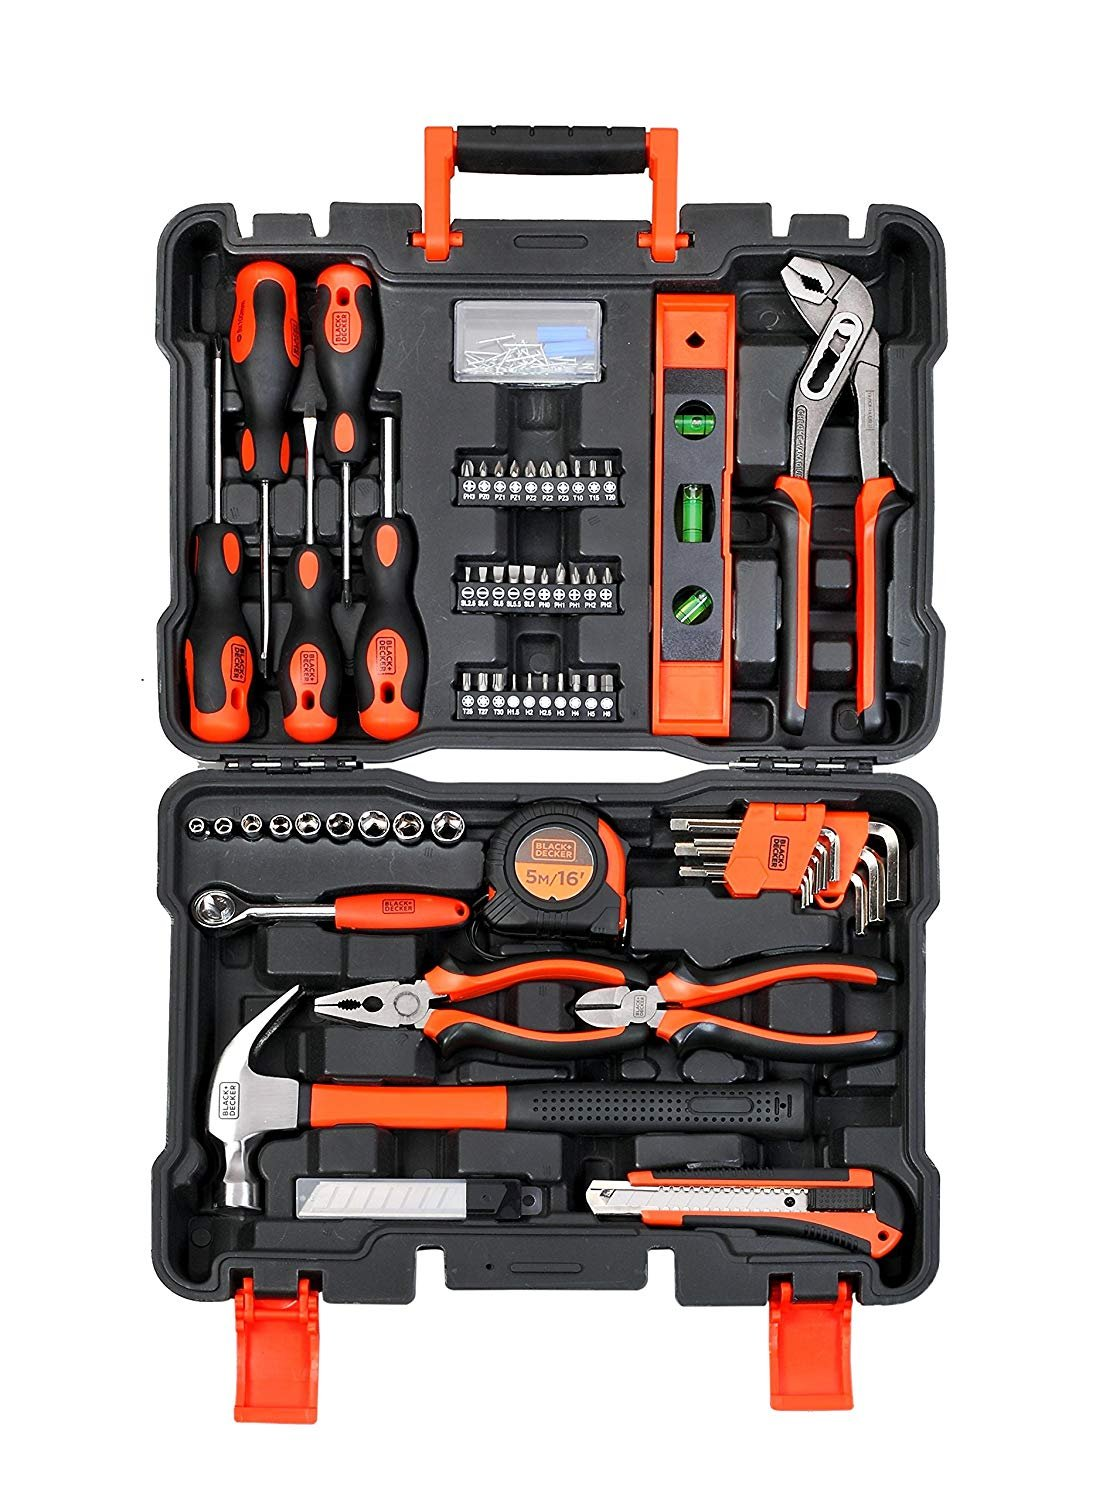 BLACK+DECKER BMT154C Professional Hand Tool Kit (154-Pieces), Orange and Black by ToolsCentre (Image #1)